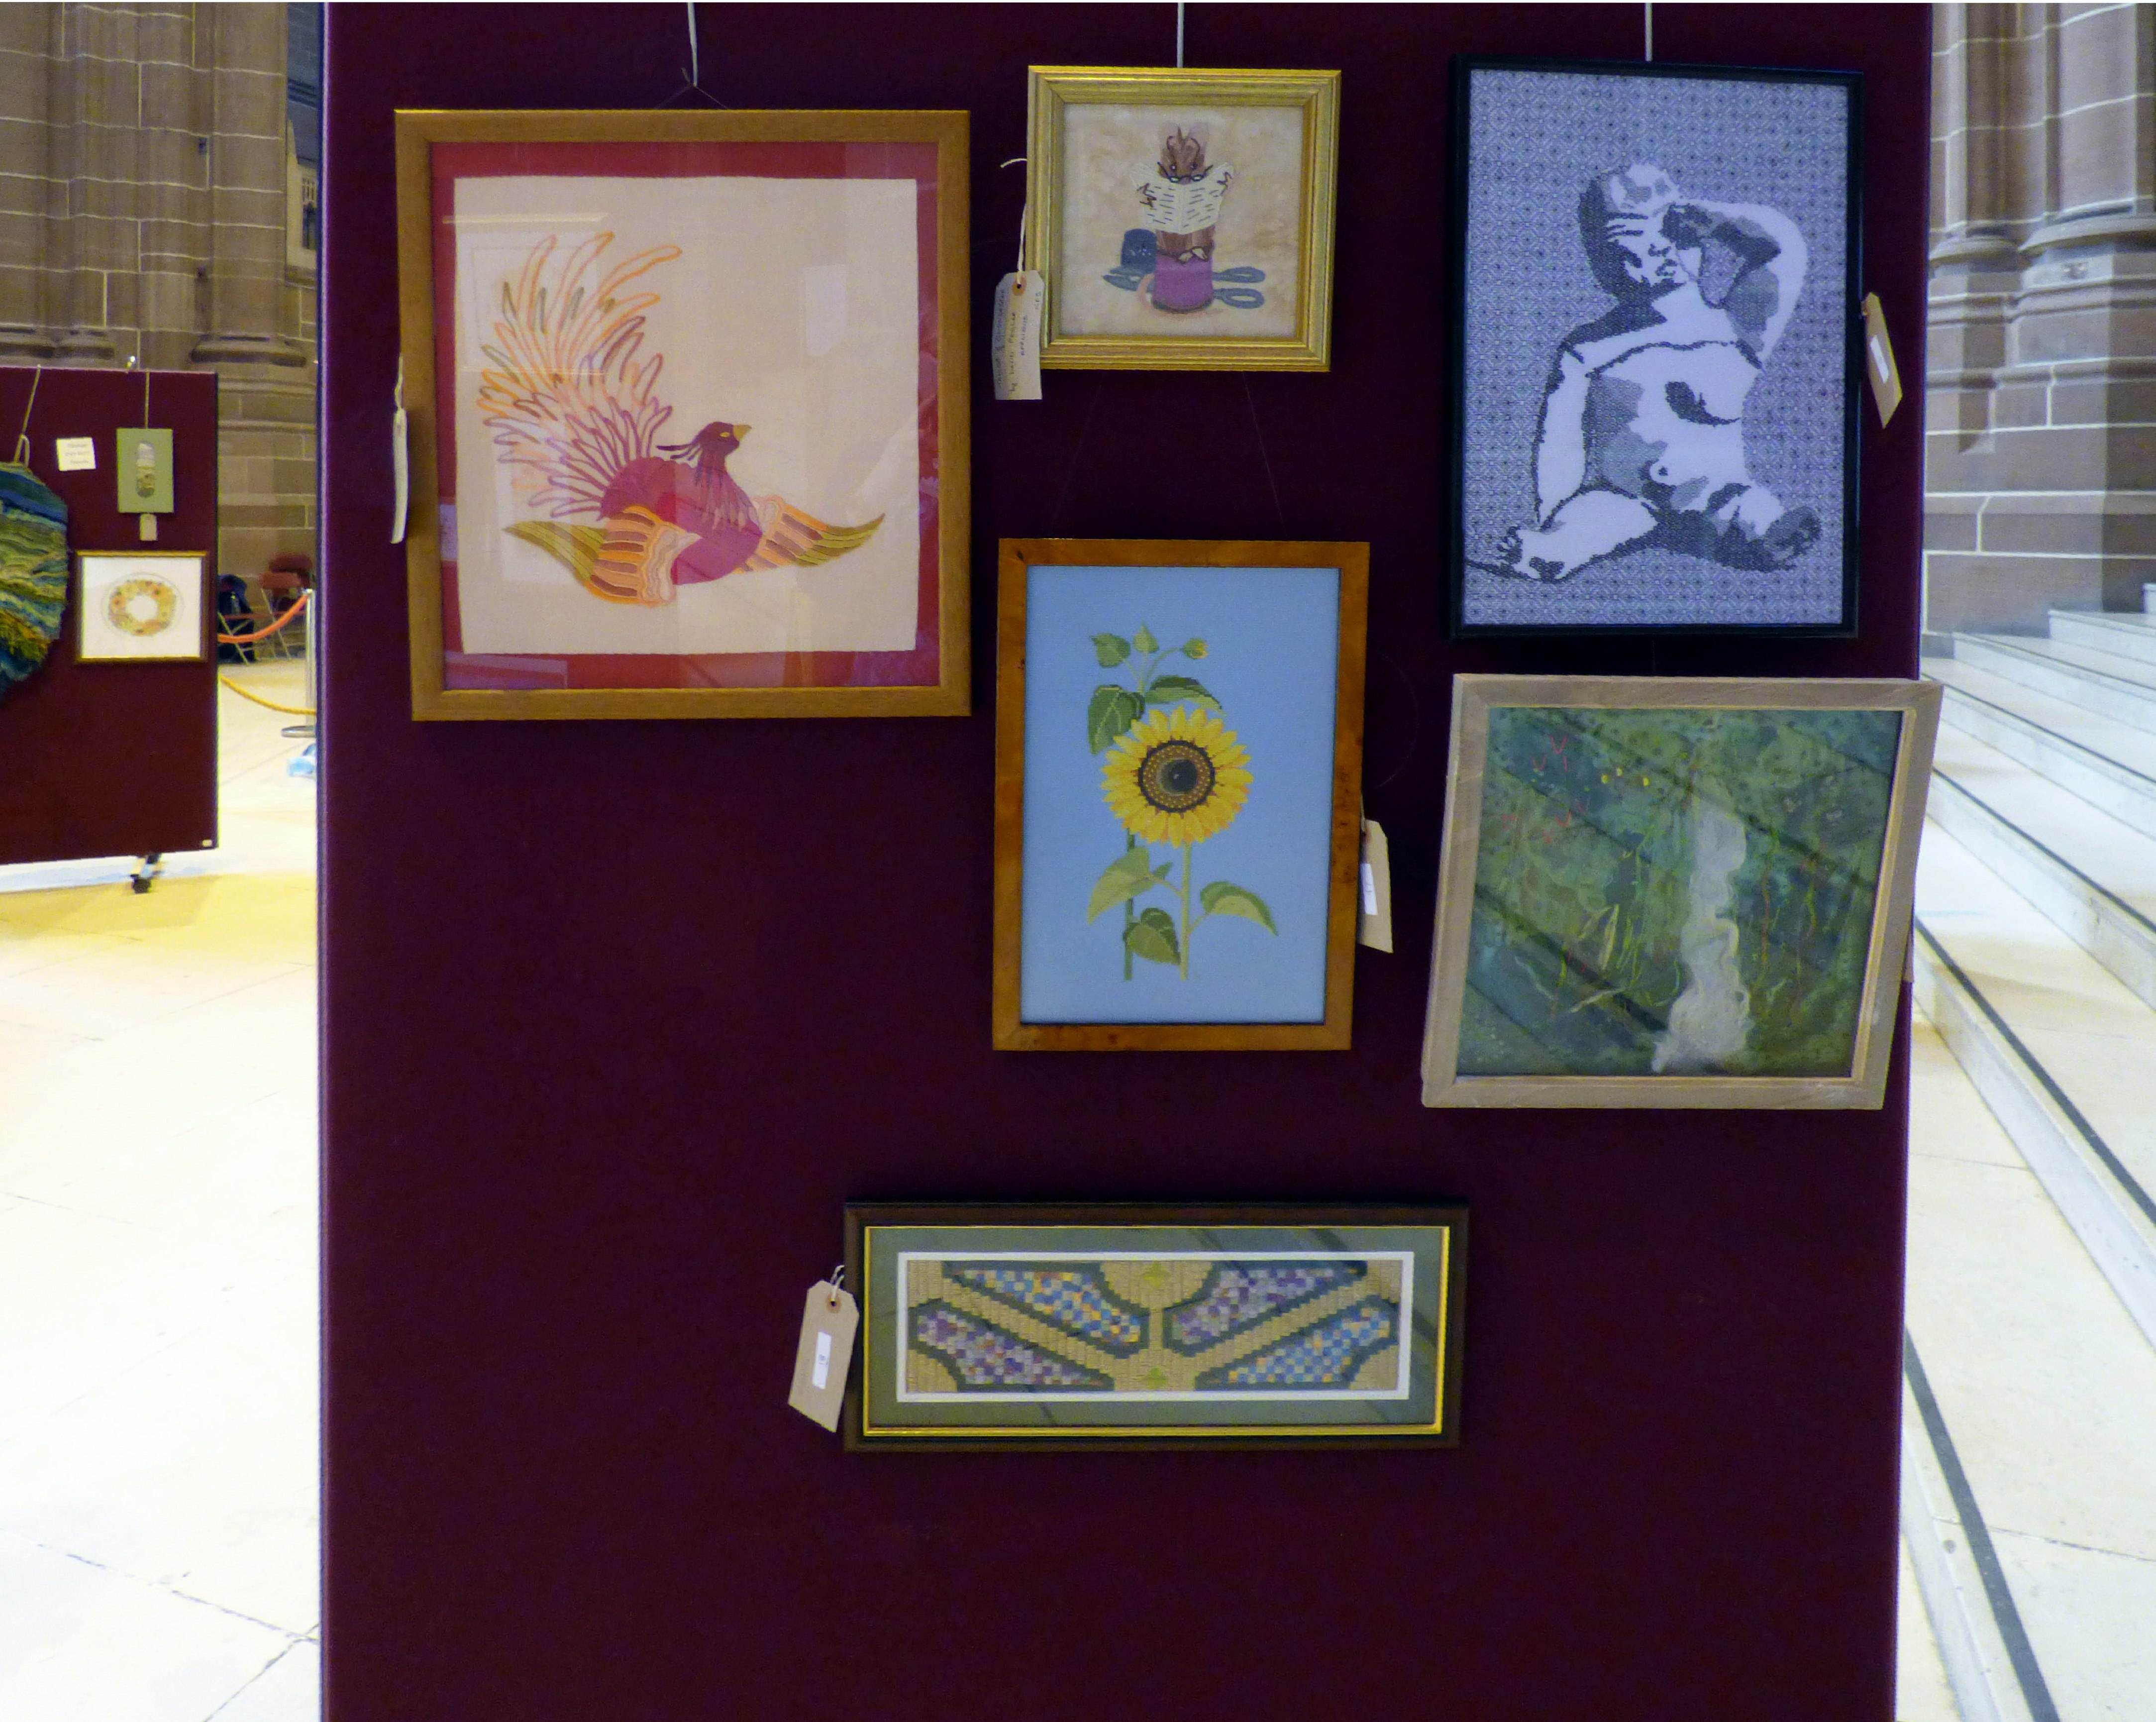 OUT OF THE ASHES by Ann Thyer, TAILOR OF GLOUCESTER by David Peglar, STONE BABY by Hilary McCormack, CAPABILITY BROWN by David Peglar, GIRASOLE by Ann Thyer and RAINFOREST, COSTA RICA by Linda sowler at 60 Glorious Years exhibition 2016